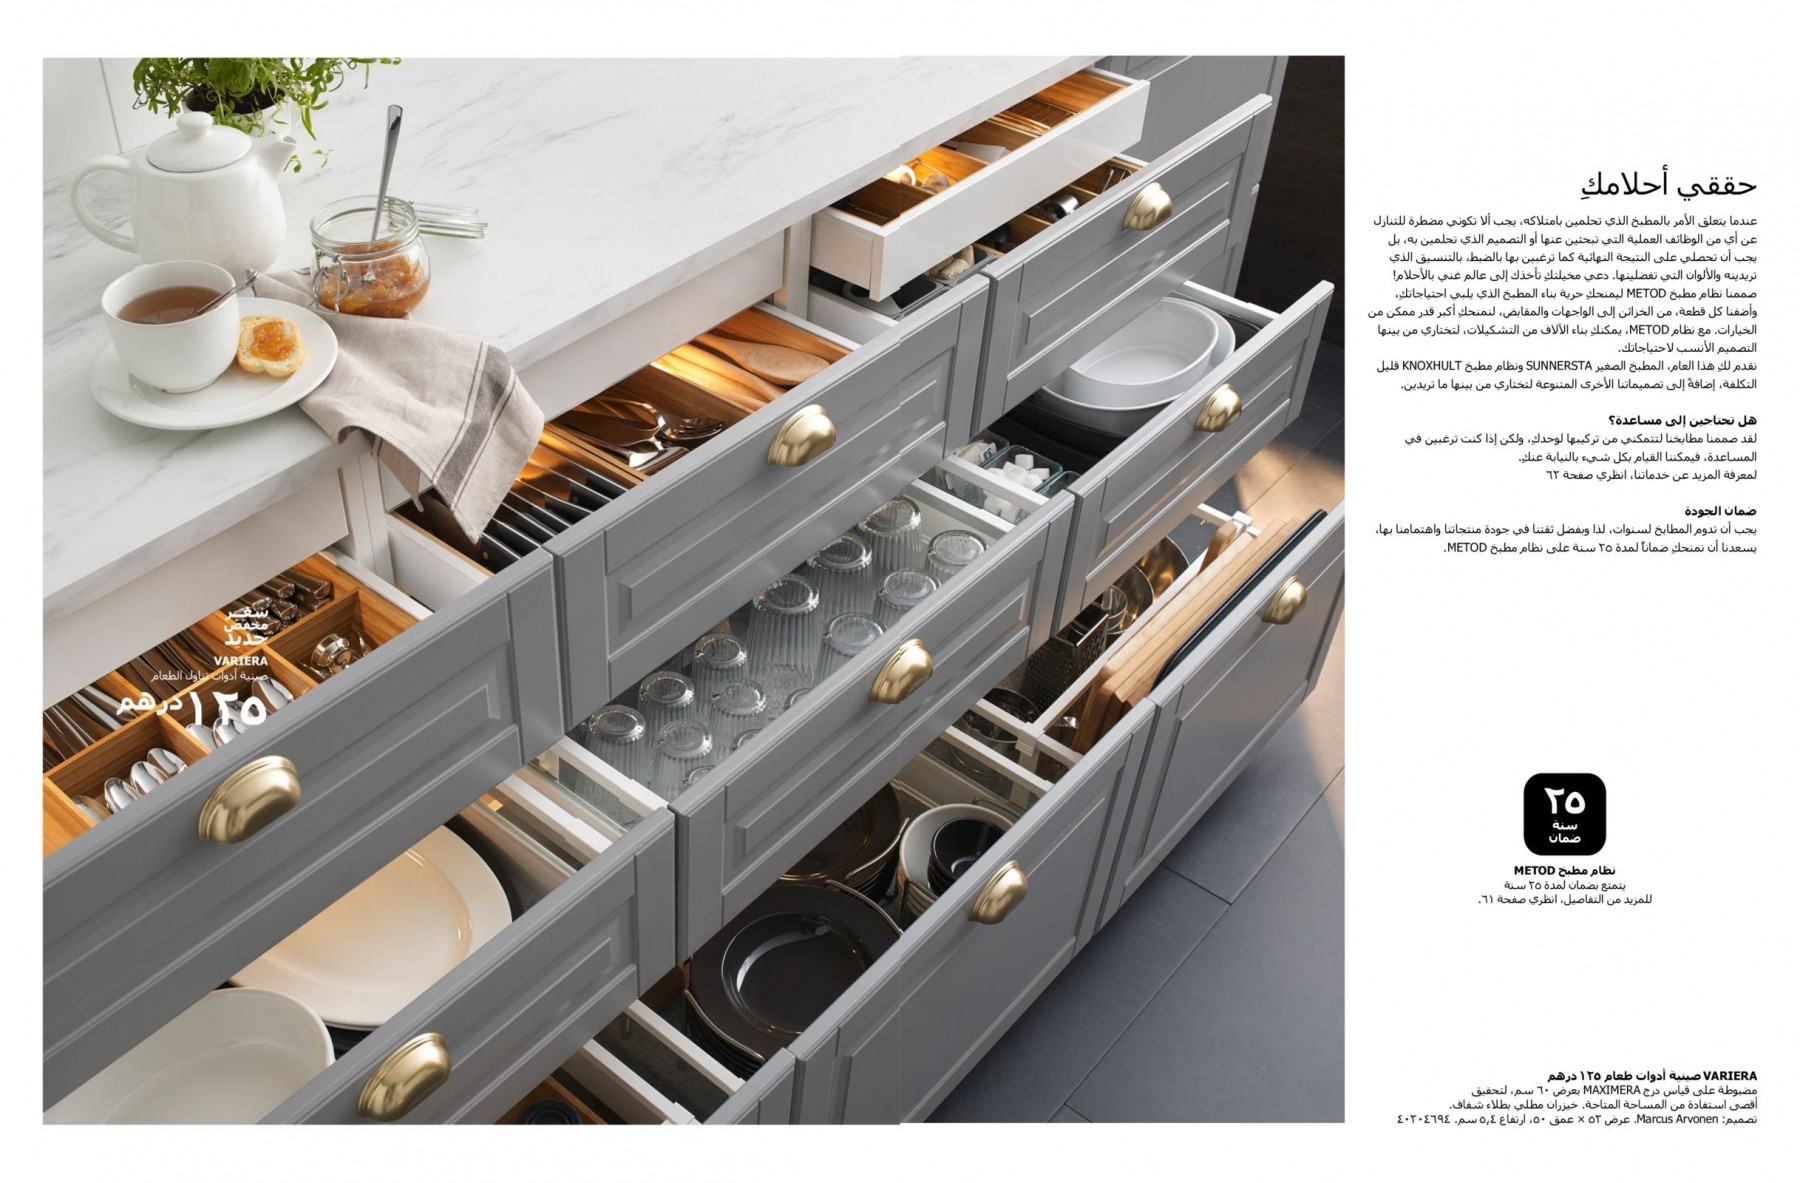 Ikea offers for kitchen from ikea until 31st july ikea offers promotions - Montage cuisine ikea ...